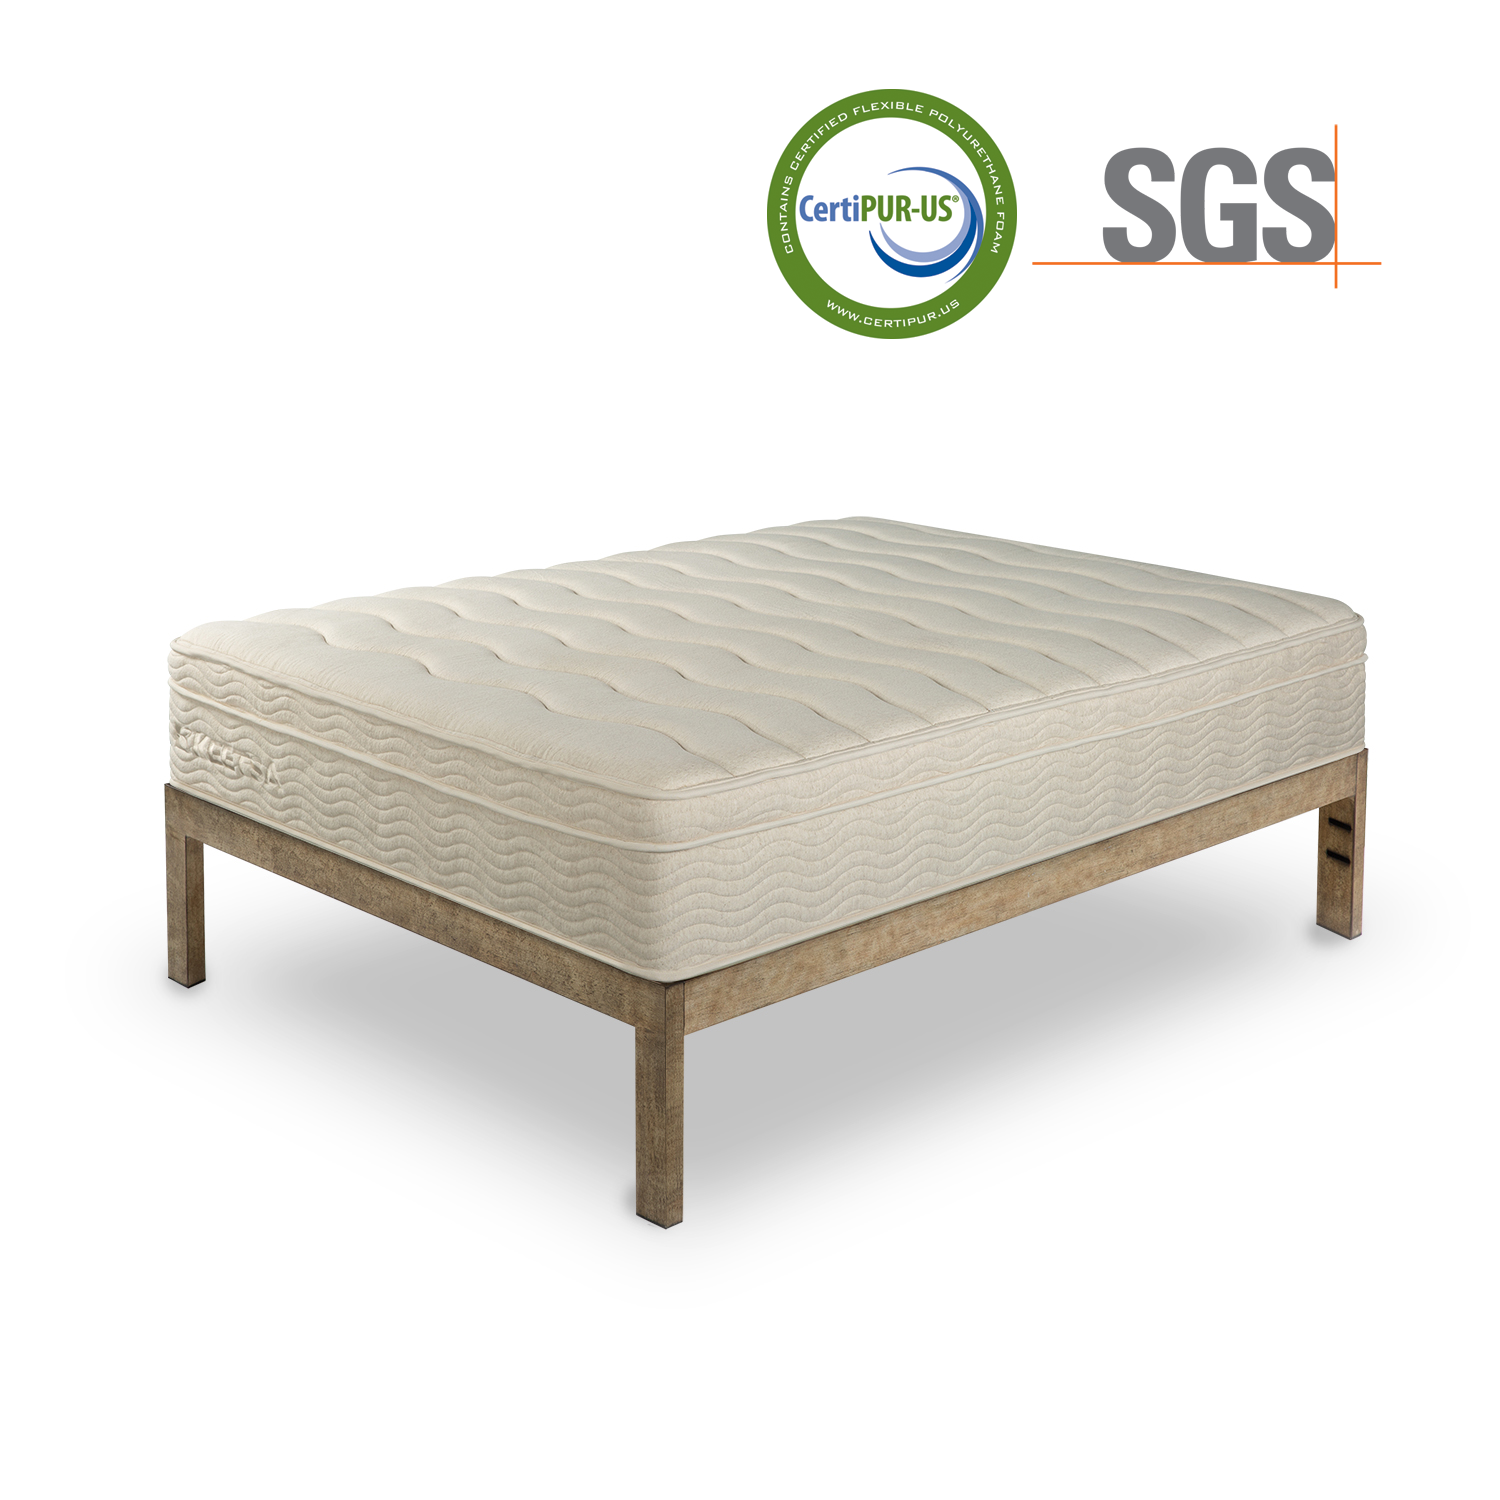 avocado green mattress made with 100 natural latex 100 jomaa new